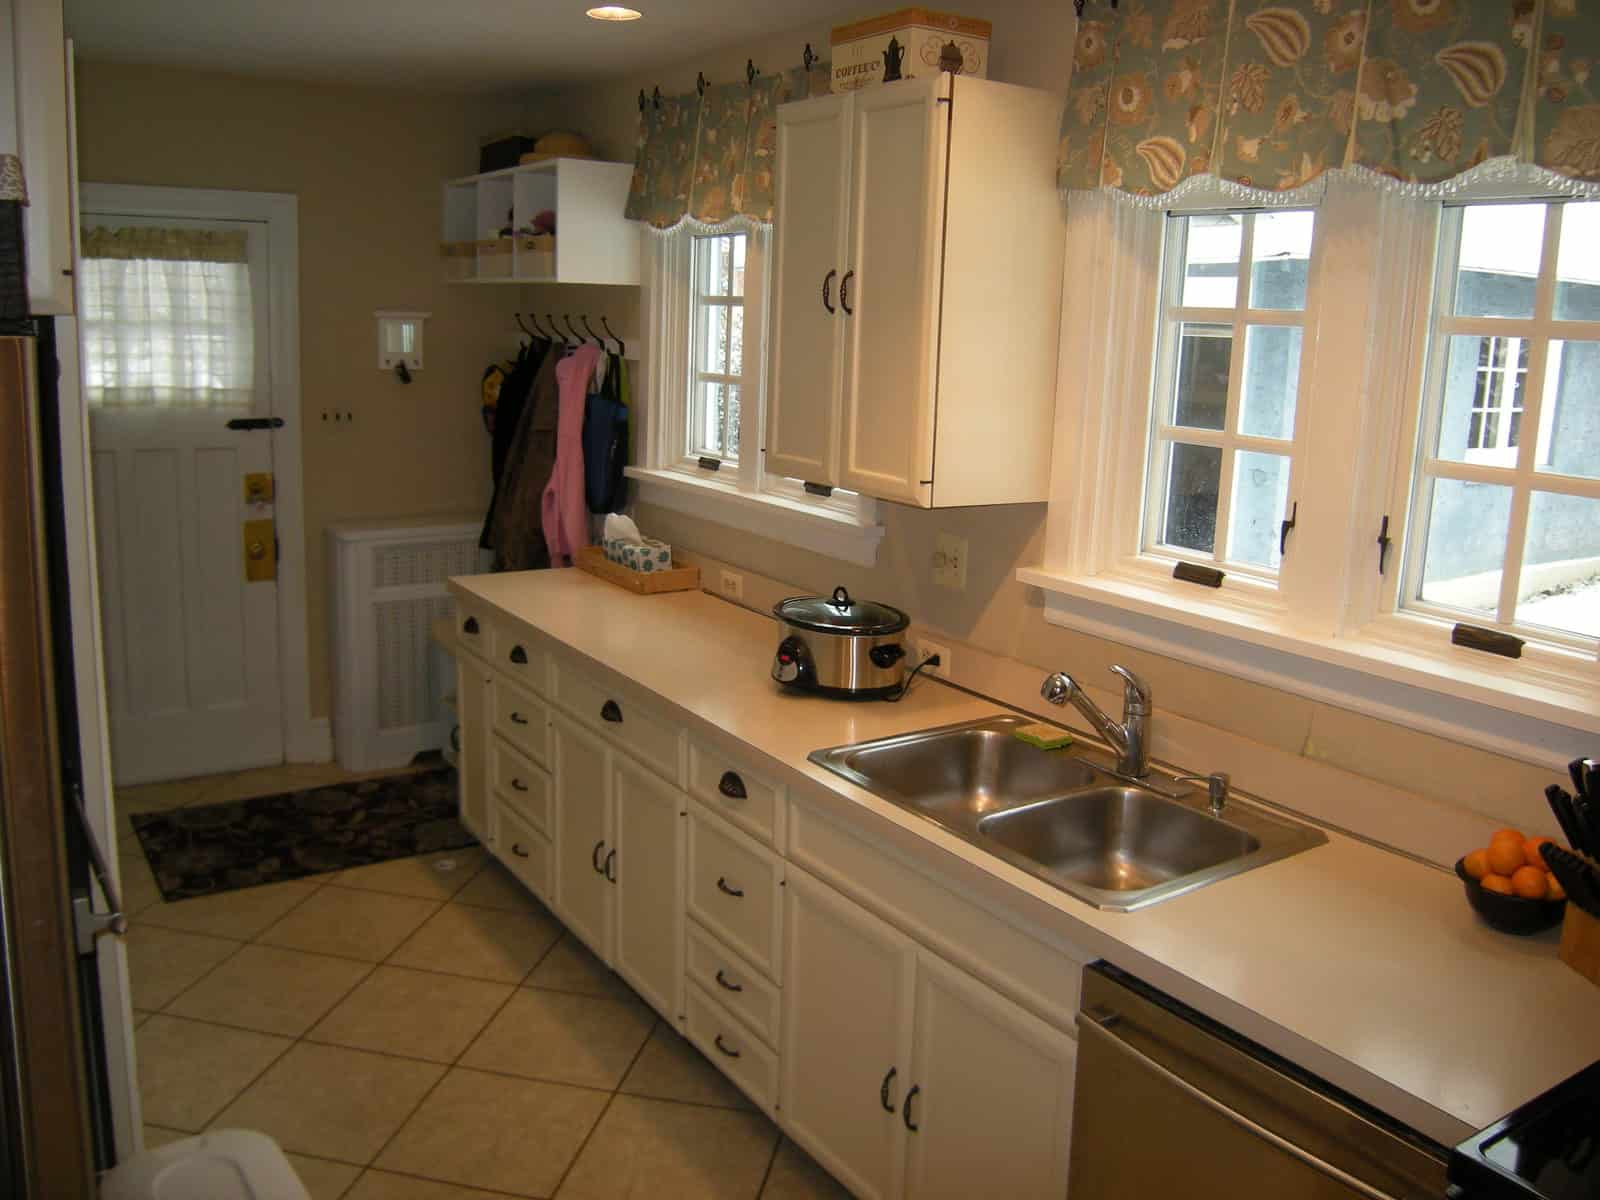 Kitchen remodel what would you do heartwork organizing for Kitchen redesign